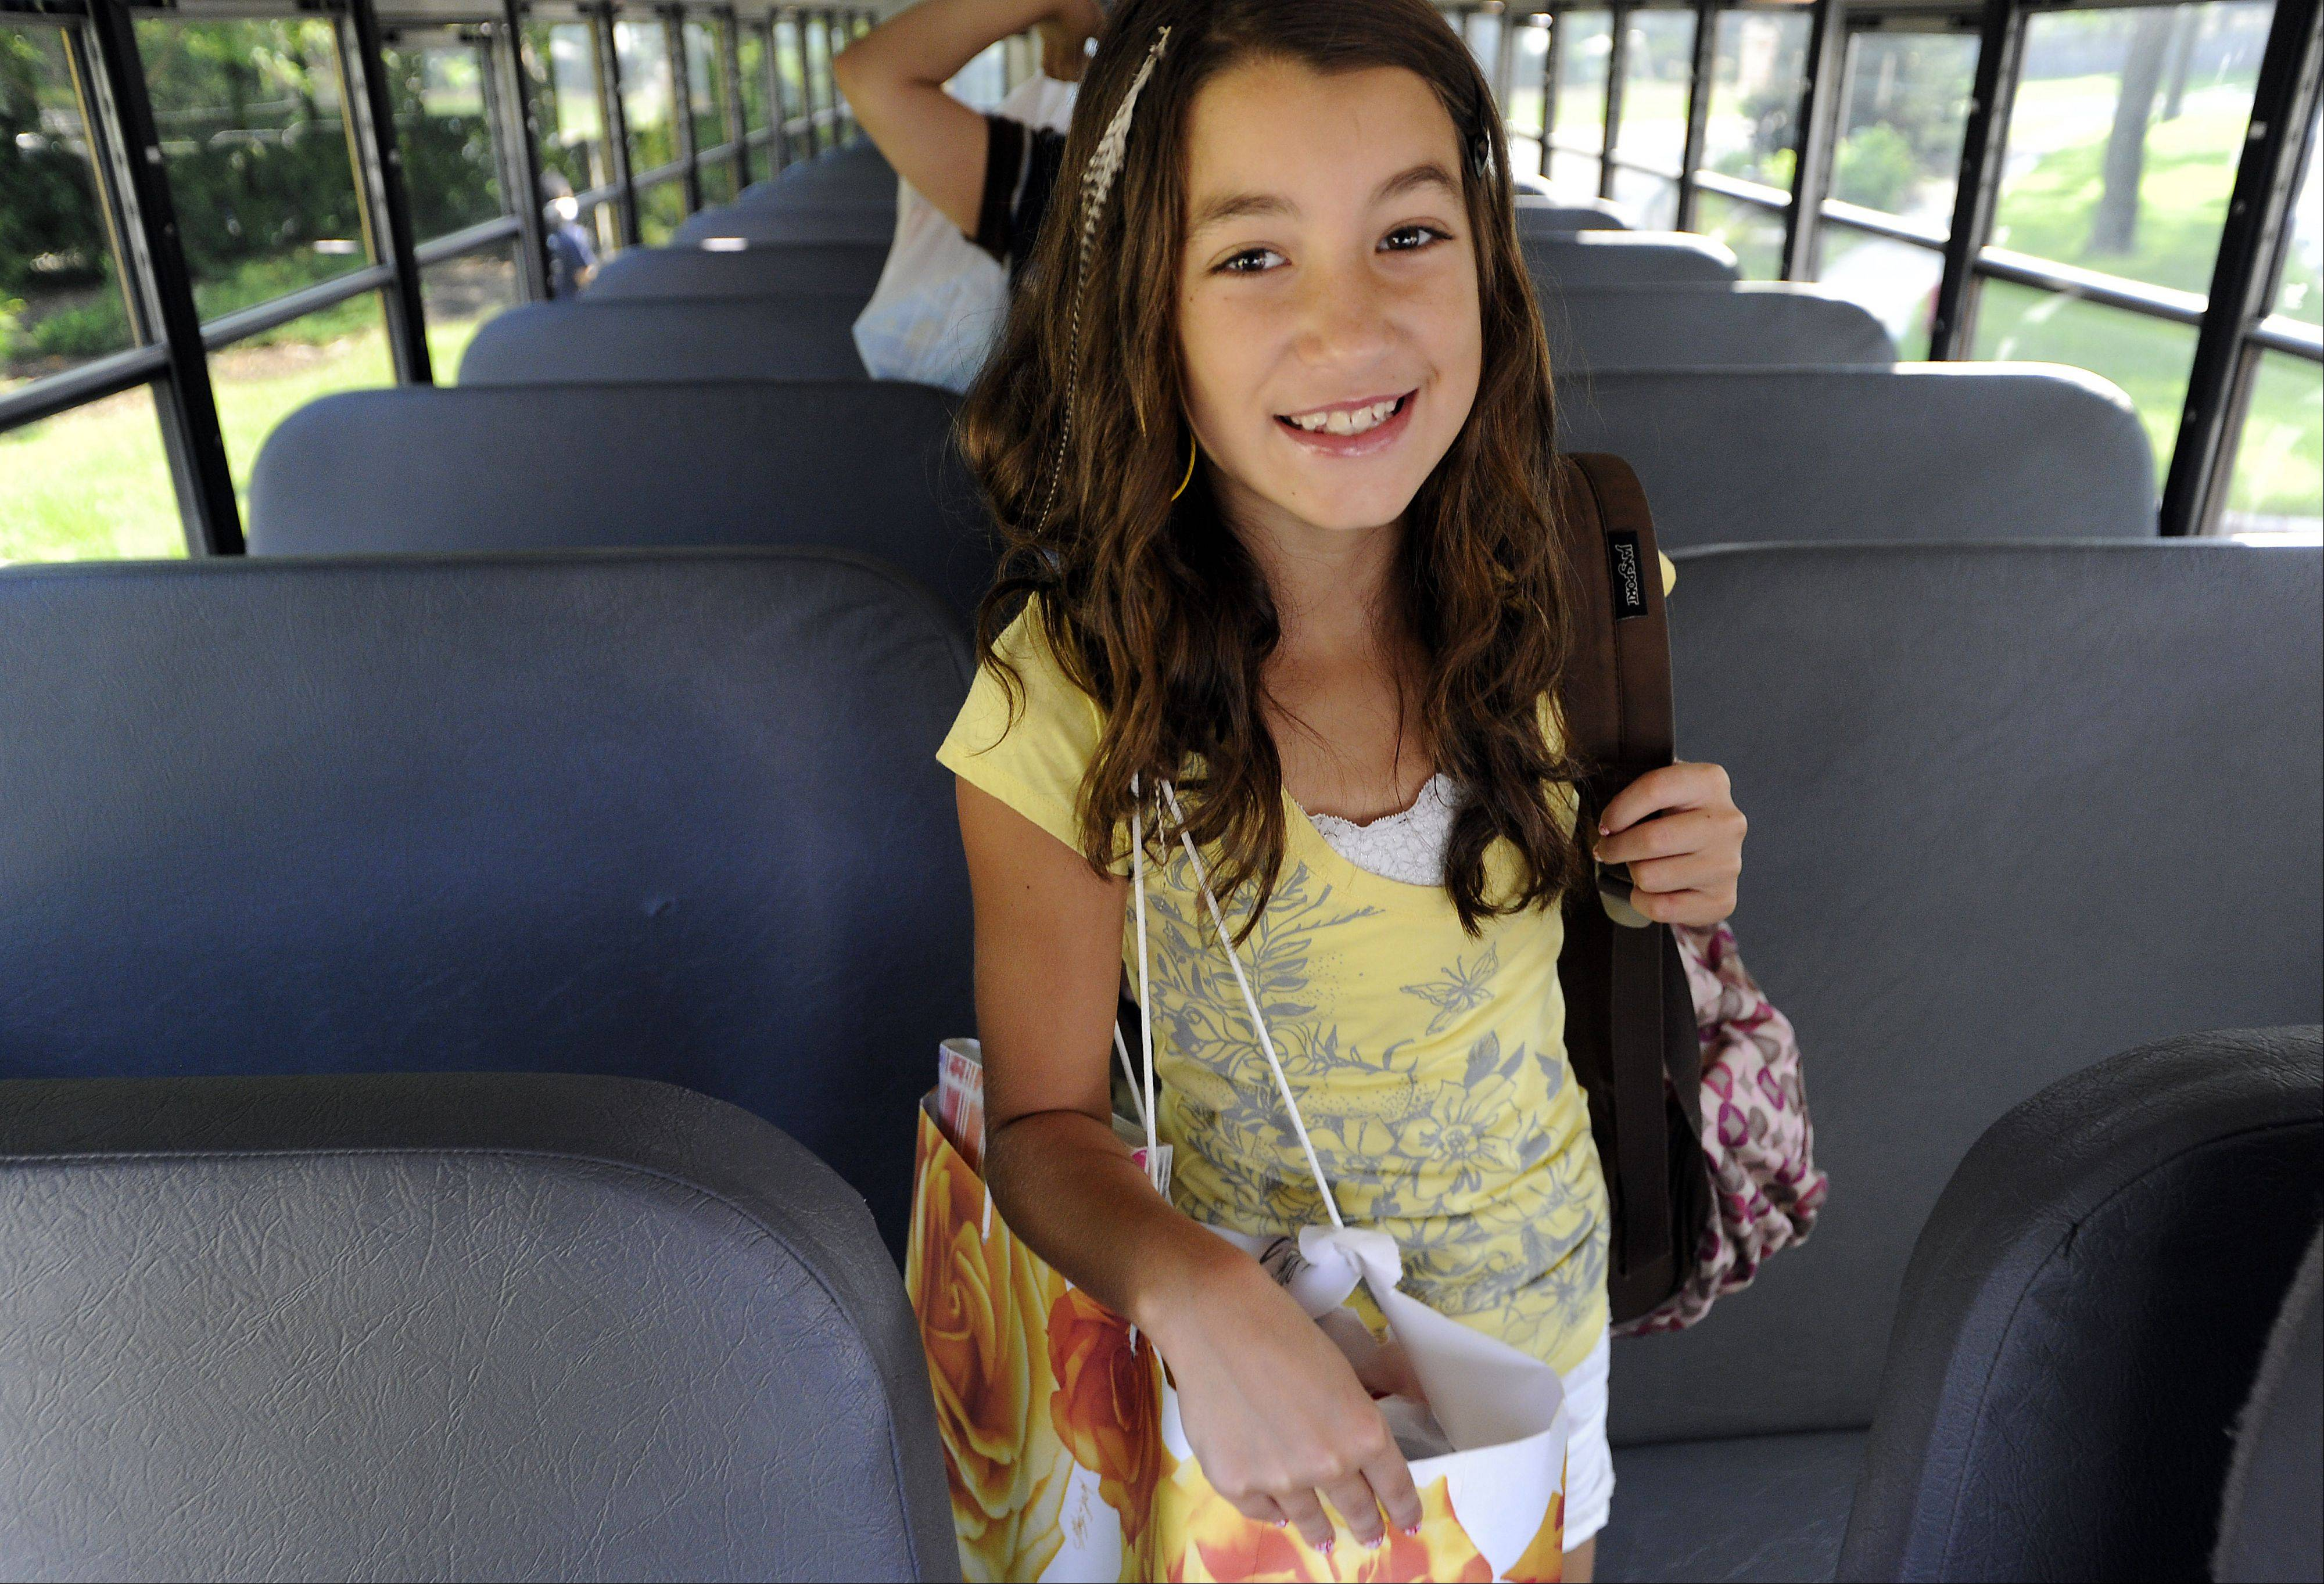 Julia Parisi, 10, in the 5th grade at Salt Creek Elementary School in Elk Grove Village exits her school bus loaded with gear excited about the new year.